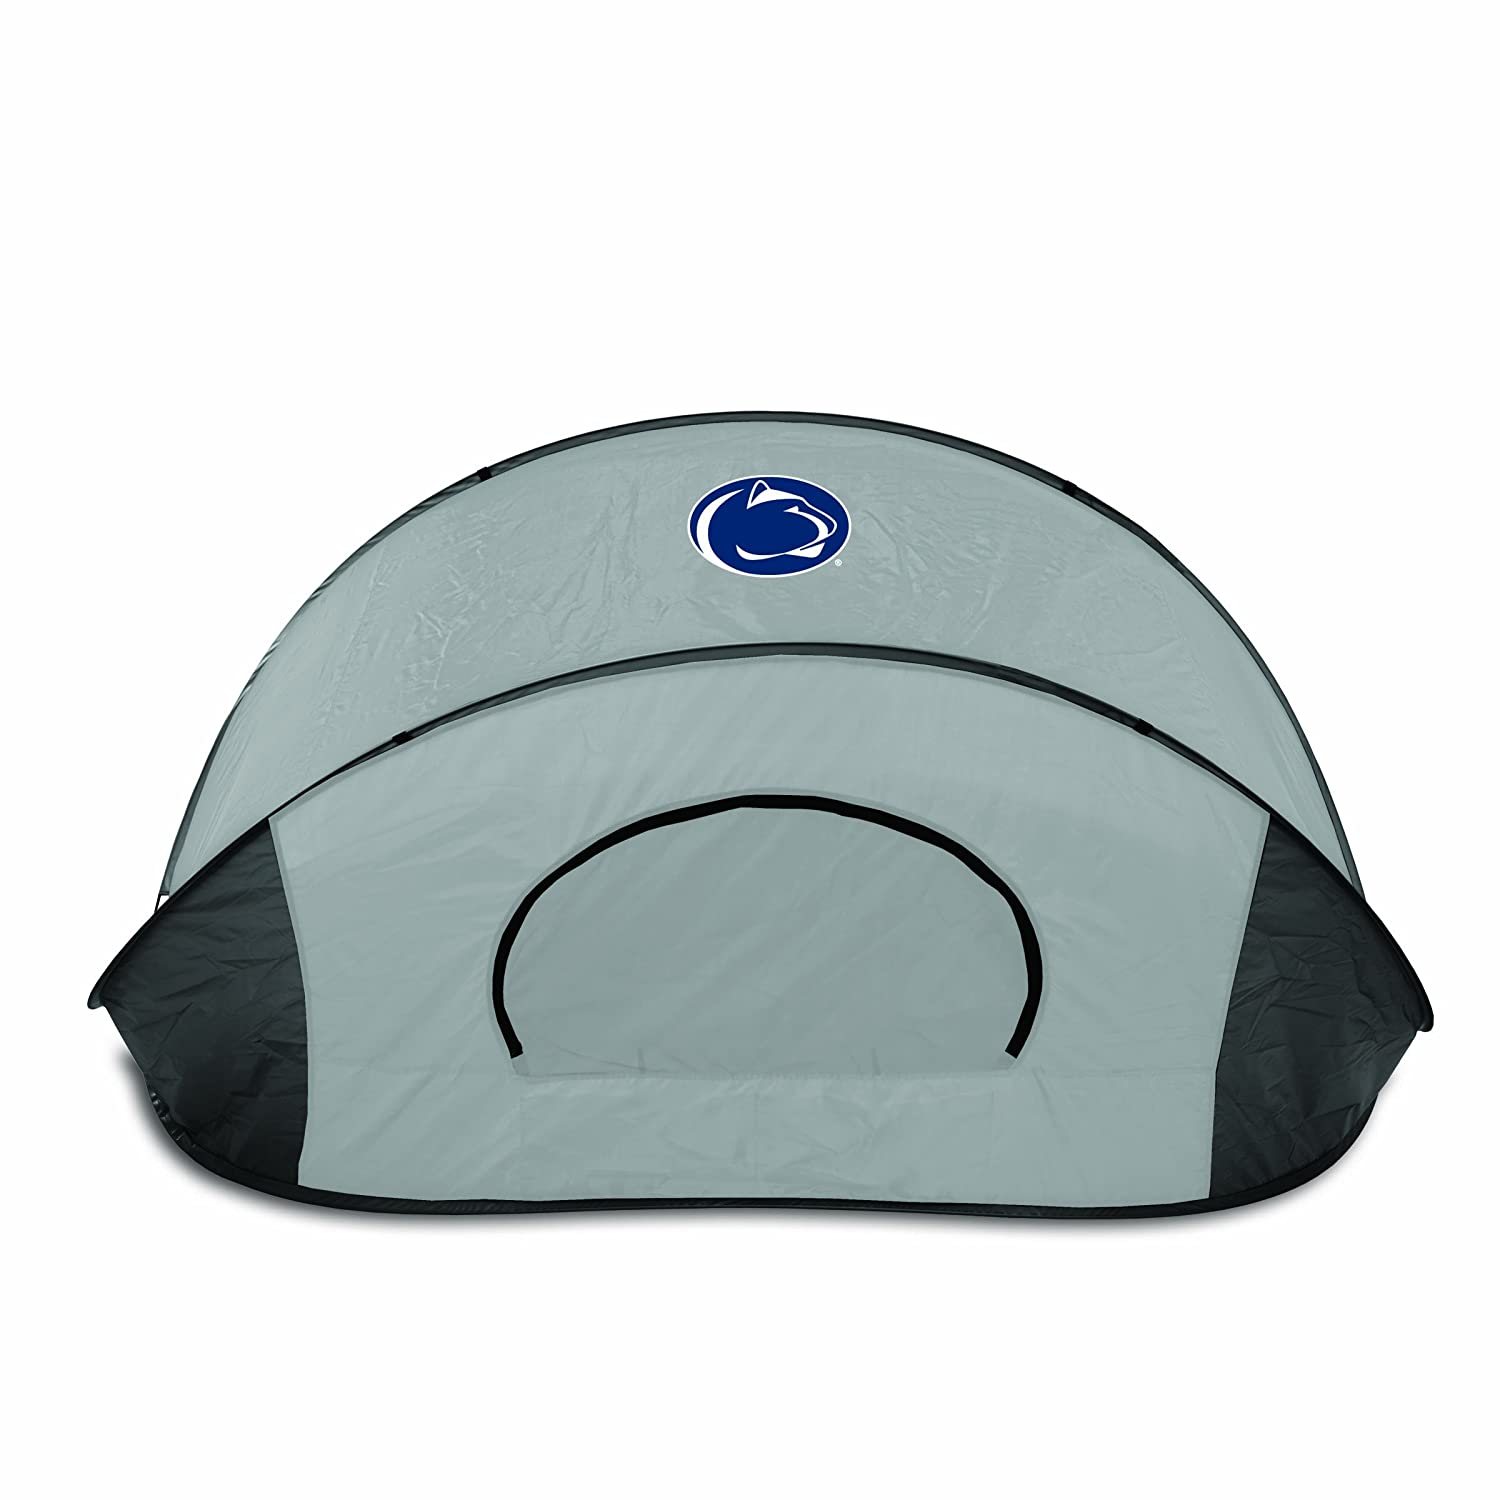 NCAA Penn State Nittany Lions Manta Portable Pop-Up Sun/Wind Shelter by Picnic Time B00AAVGY4A